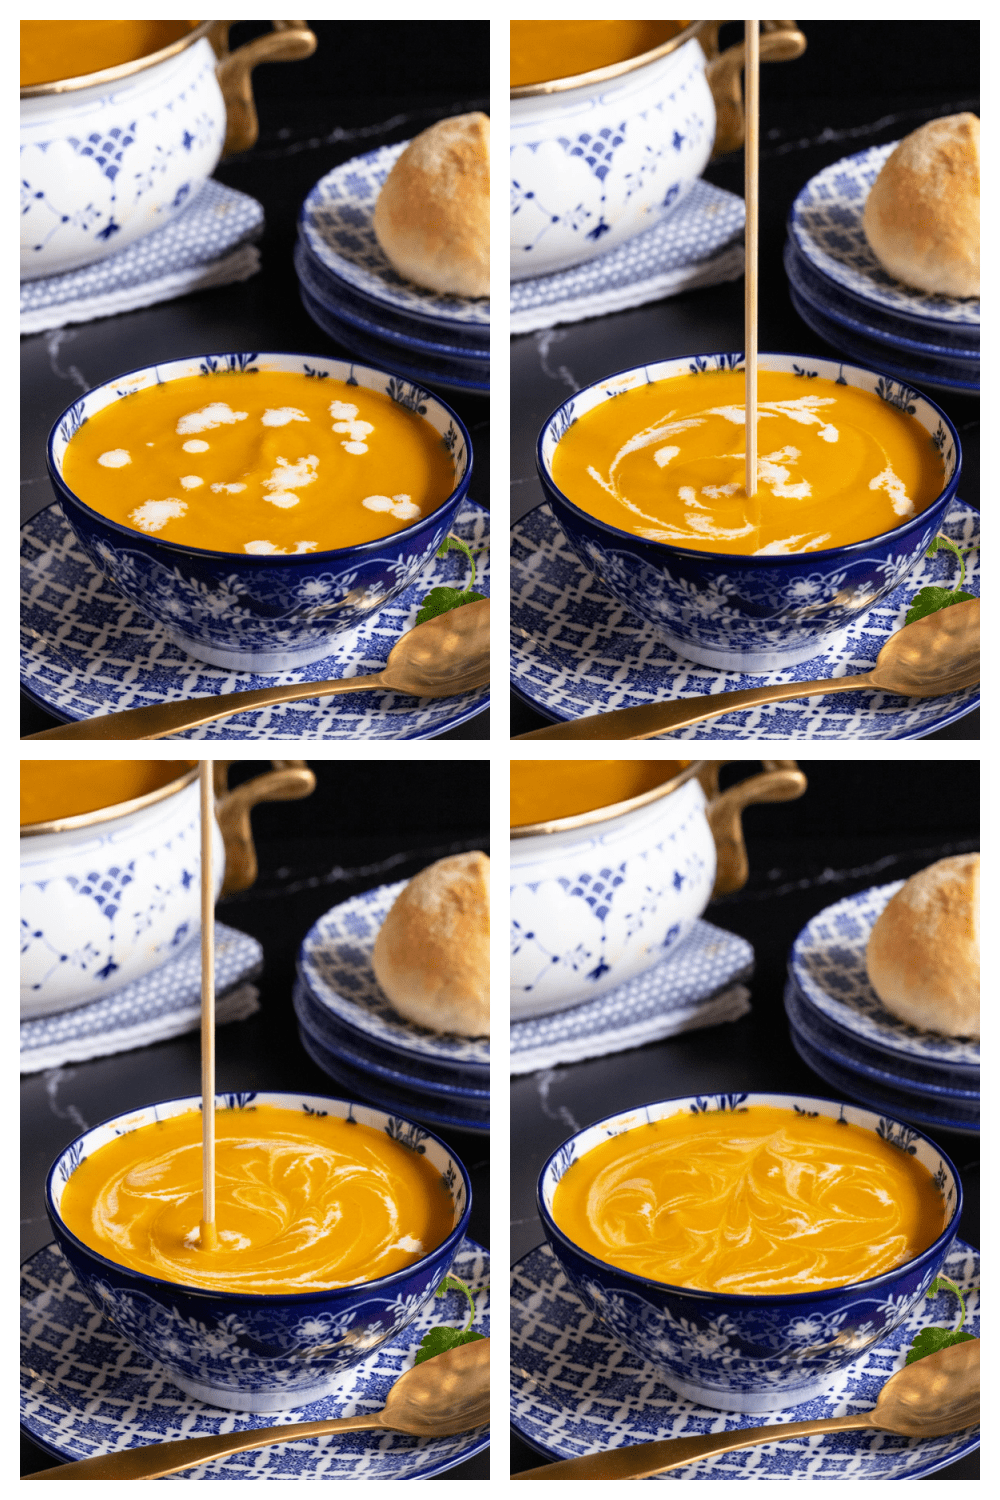 Overhead 4-photo collage of how to swirl and decorate a bowl of Red Lentil Carrot Ginger Soup with heavy cream or Greek yogurt.